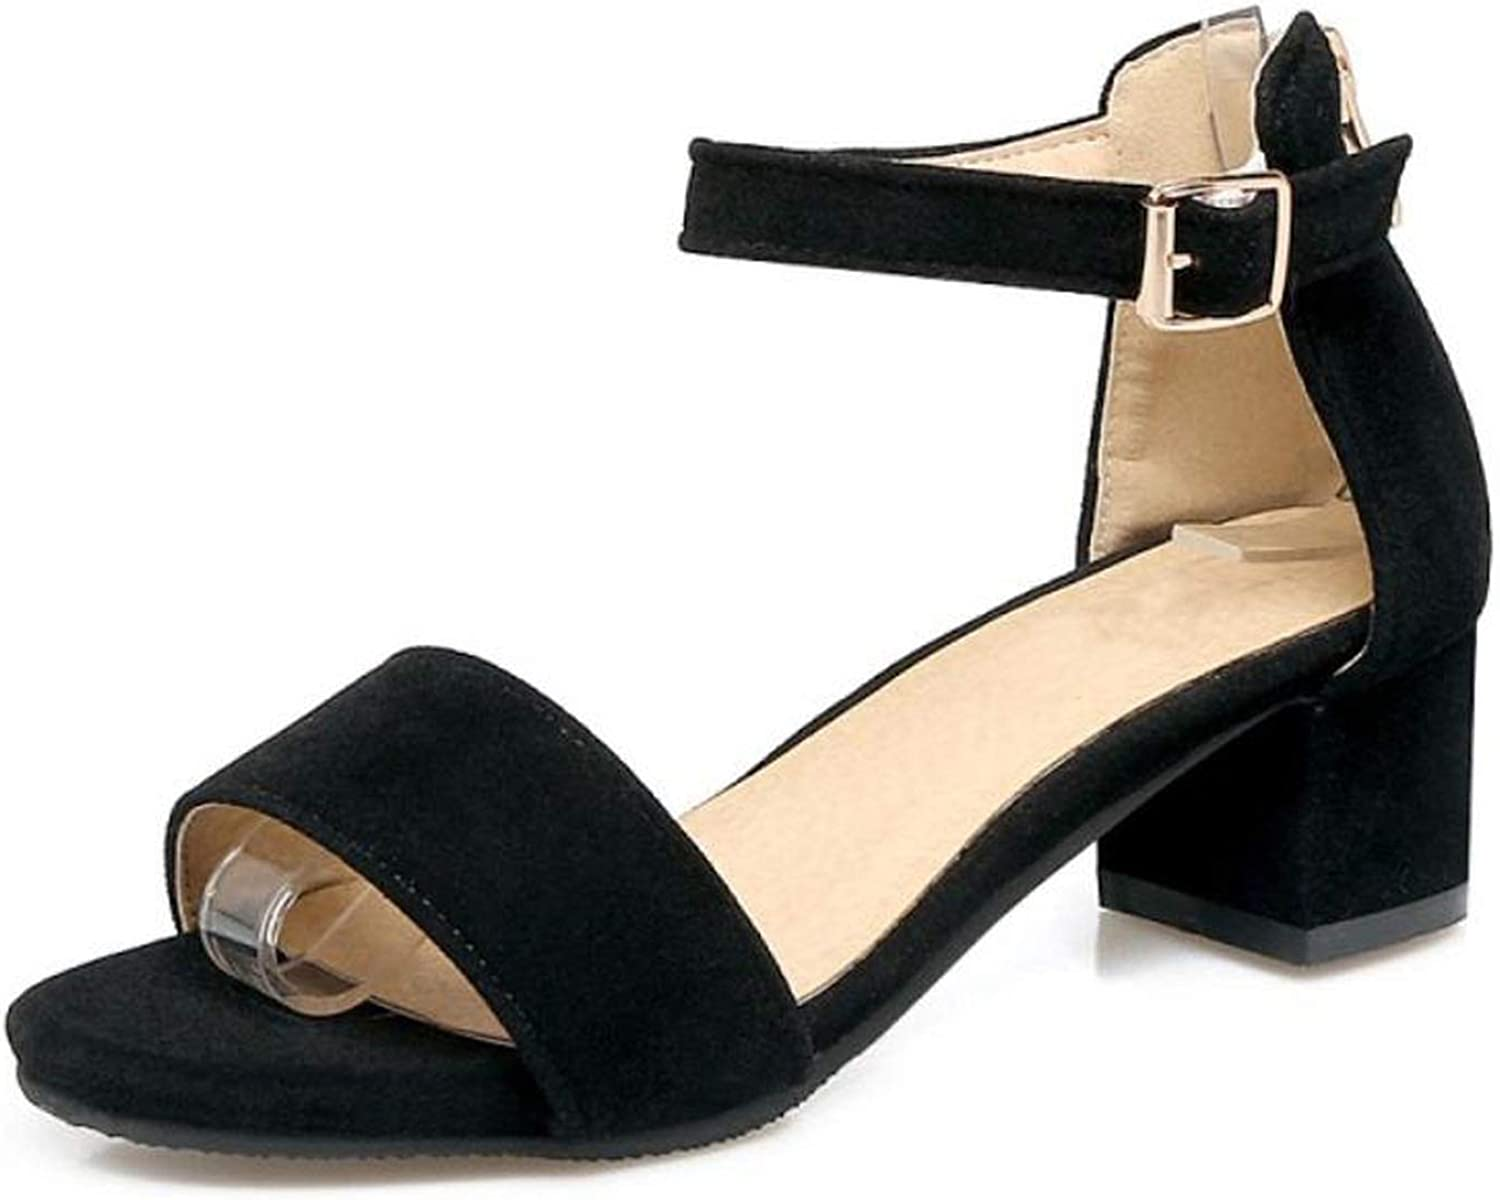 Fairly shoes Mid Heels Buckle Simply Summer shoes Fashion Casual Party Sexy shoes,Black,11.5